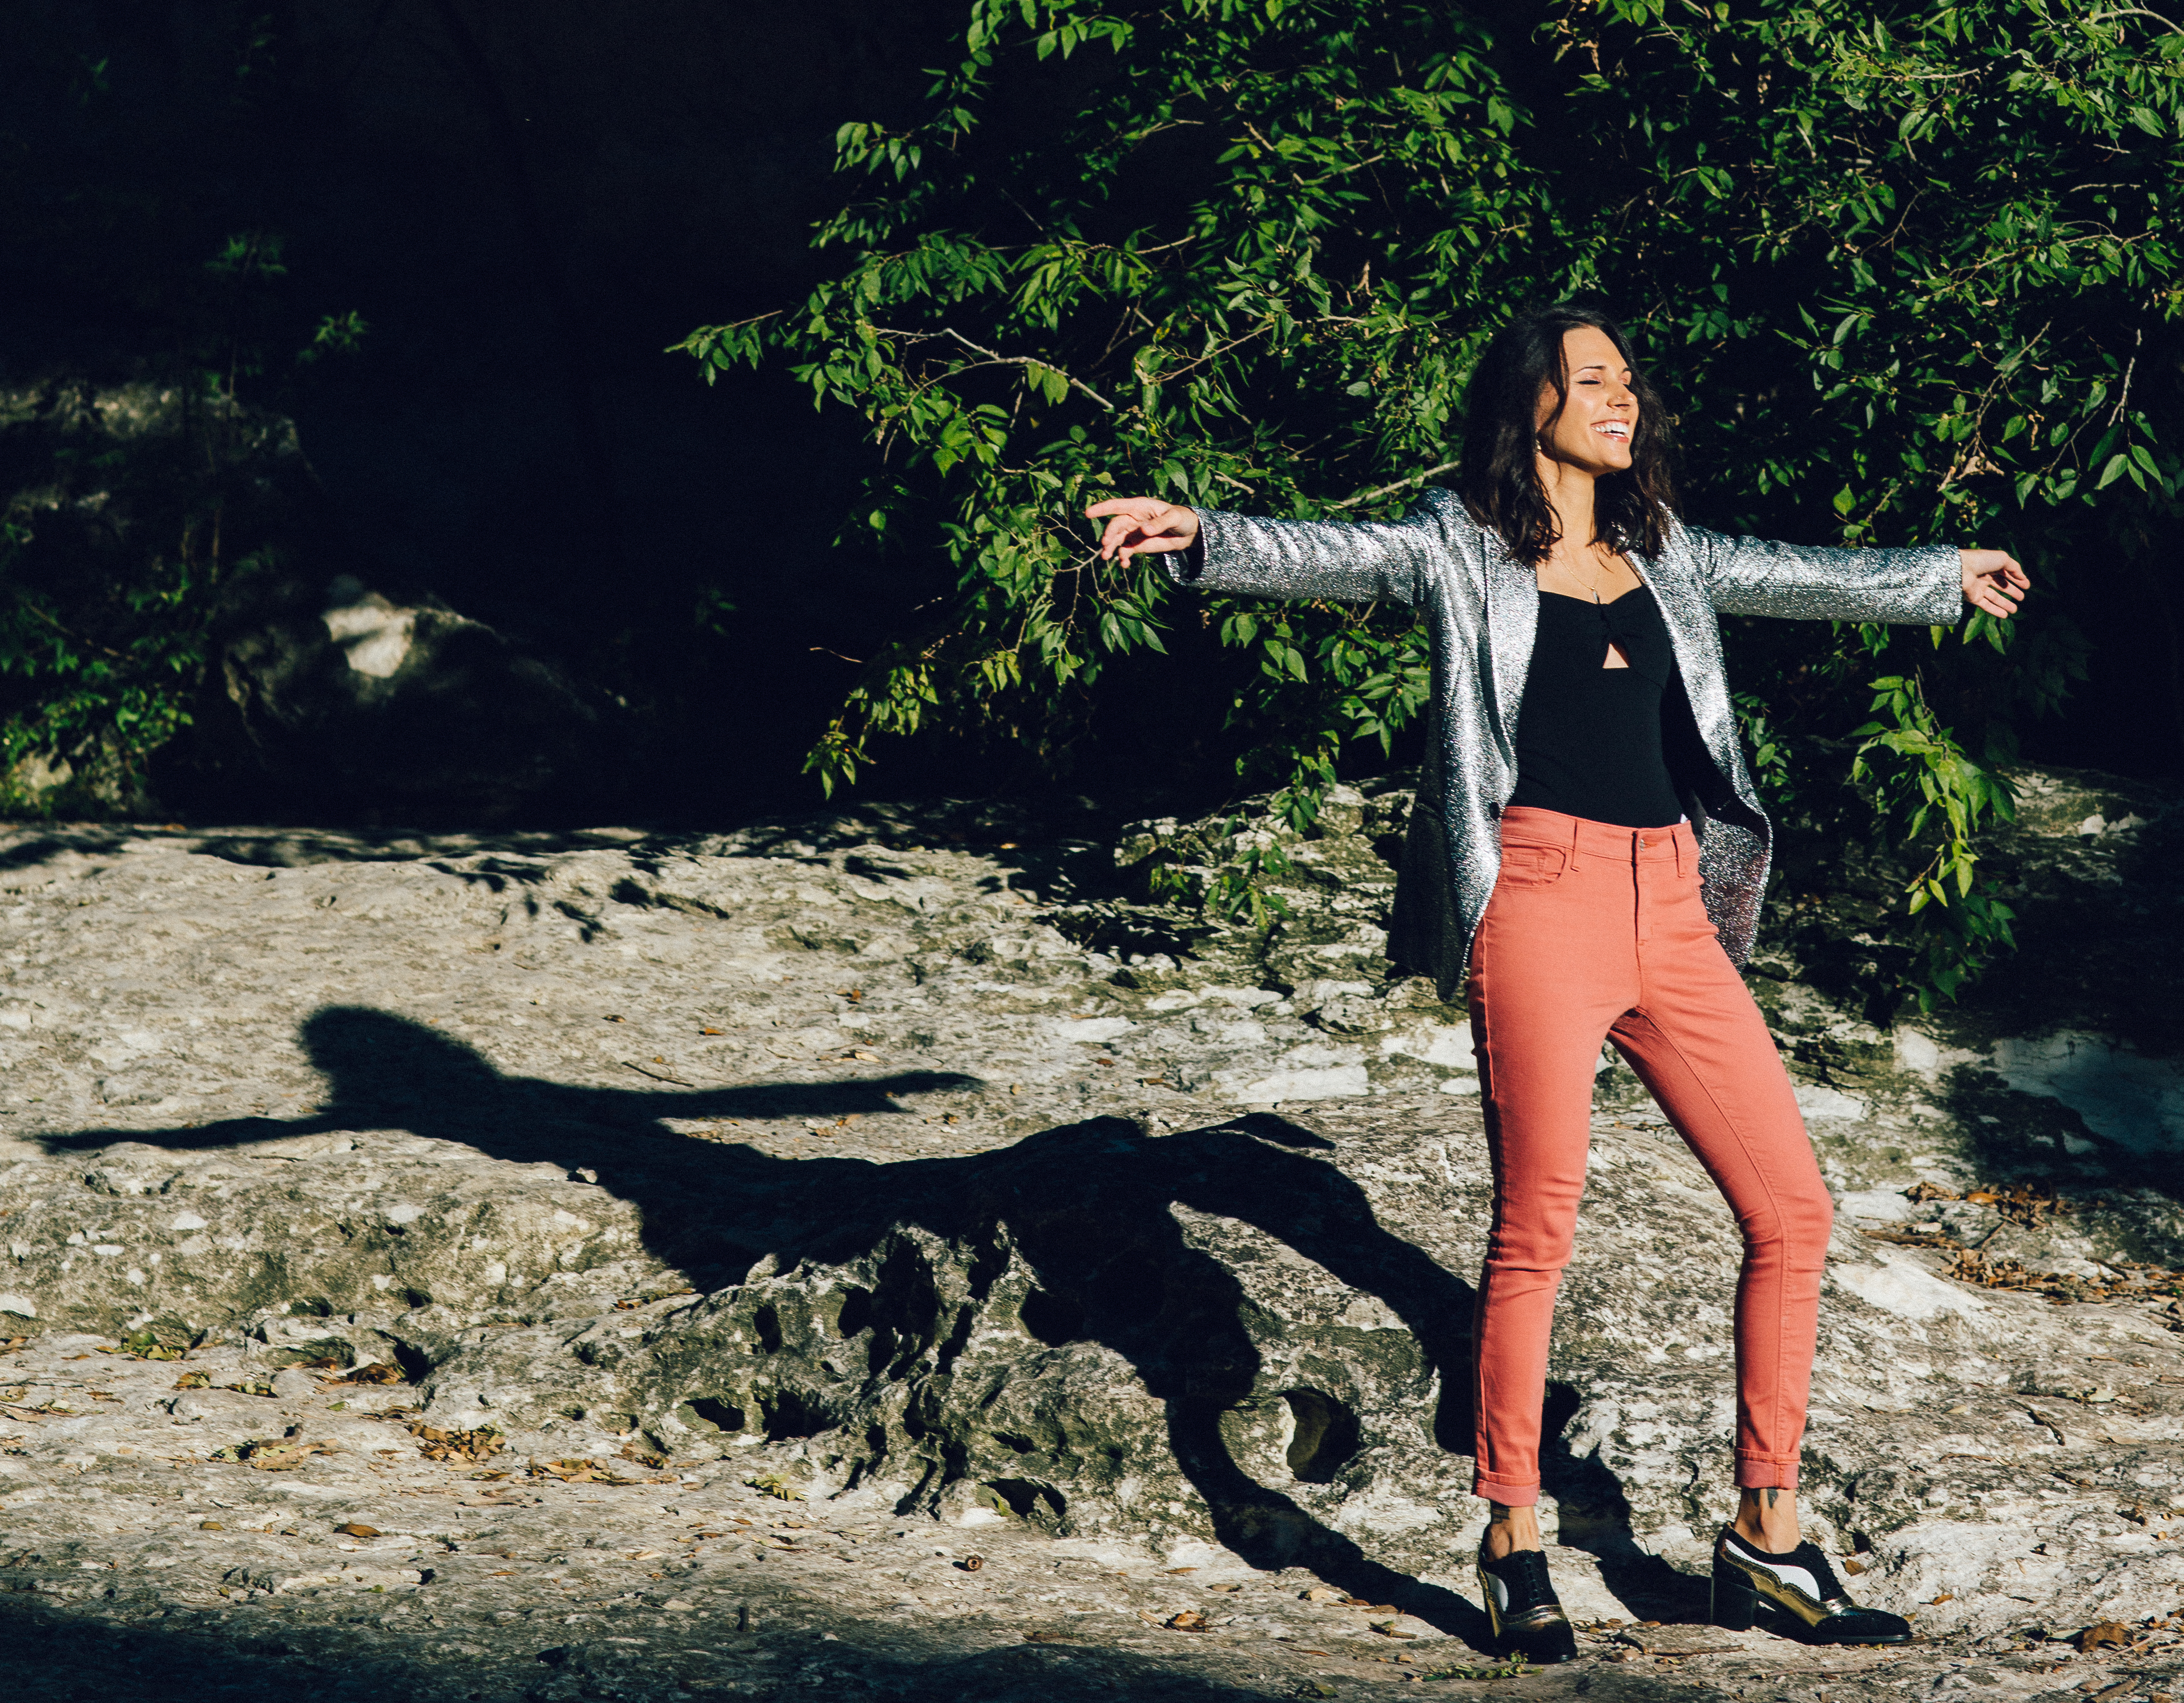 Shohreh stands with arms outstretched in a salmon-colored pants, a black top, and a glittery silver blazer. She is laughing with her face turned toward the sun.